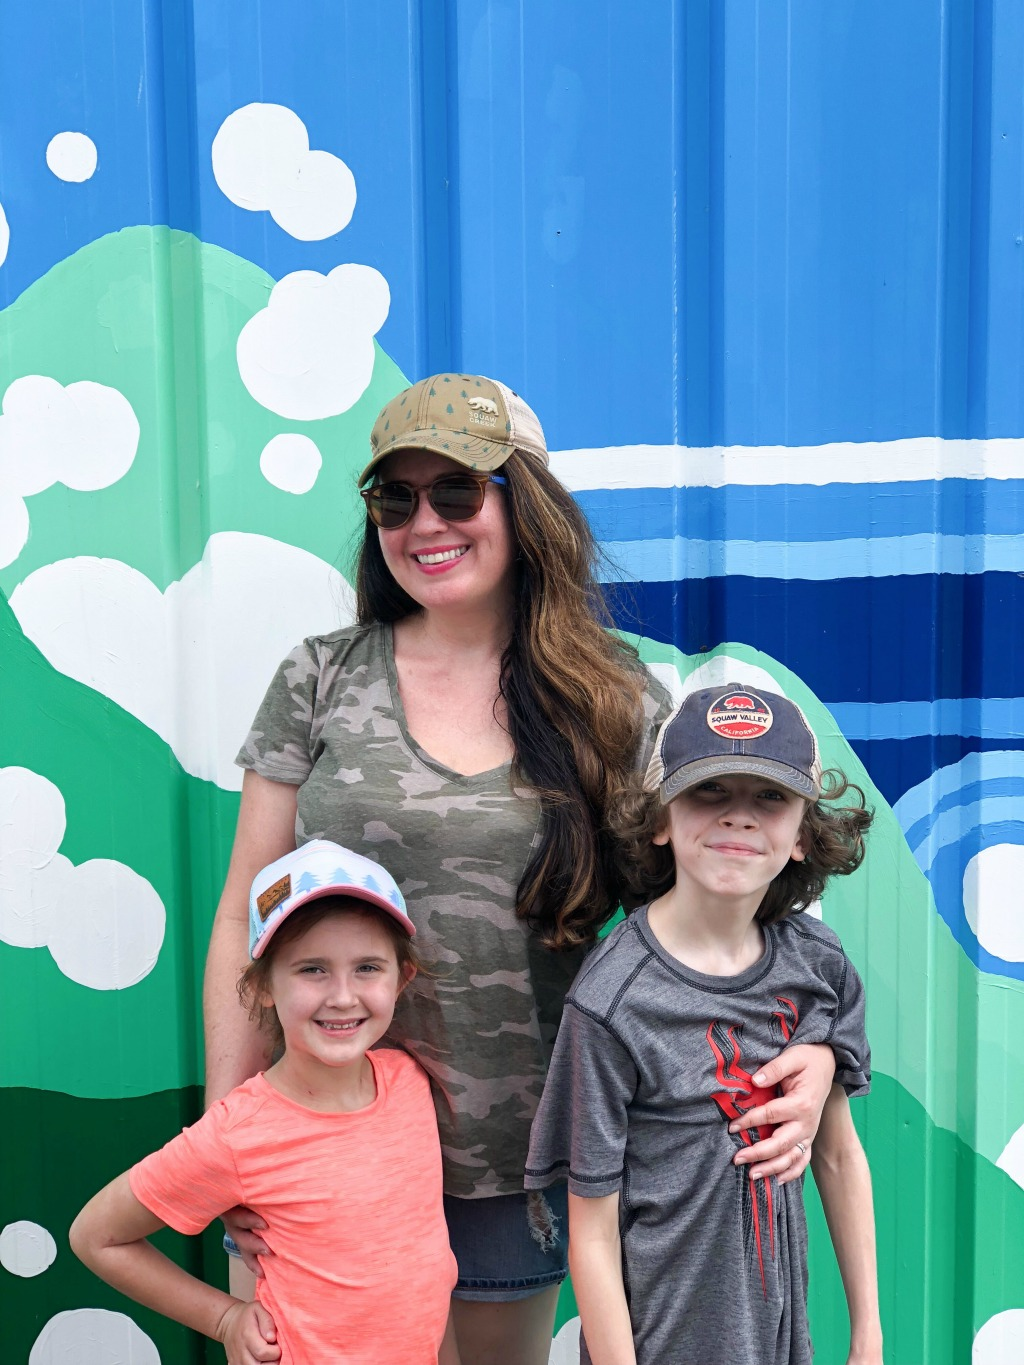 mother and children in front of blue and green mural